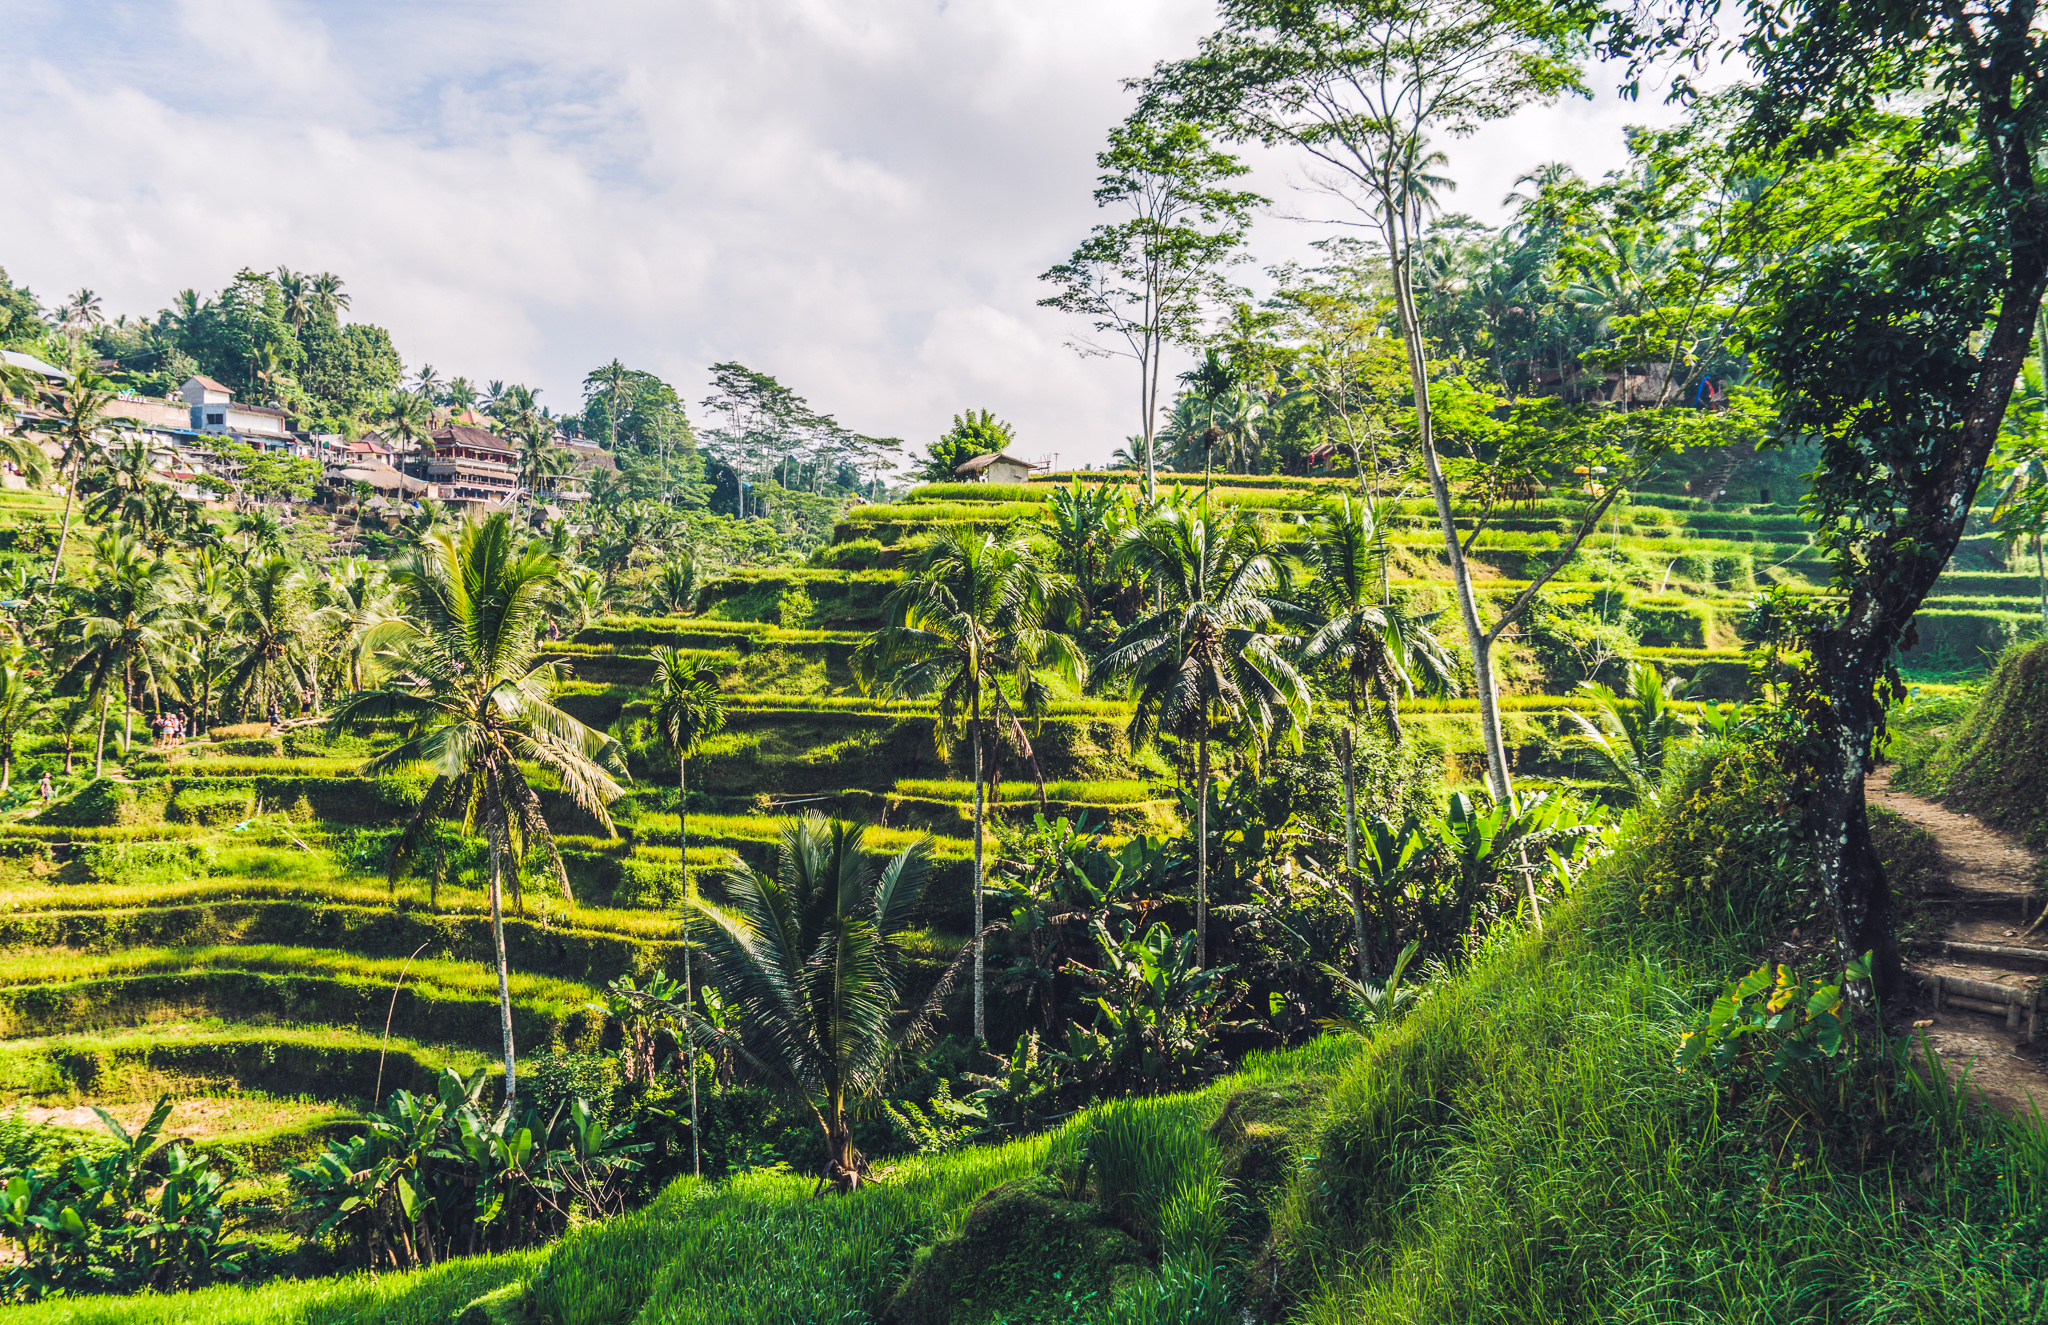 Summer Program - Pre-Med | Travel For Teens: Bali Healthcare Education and Medical Outreach